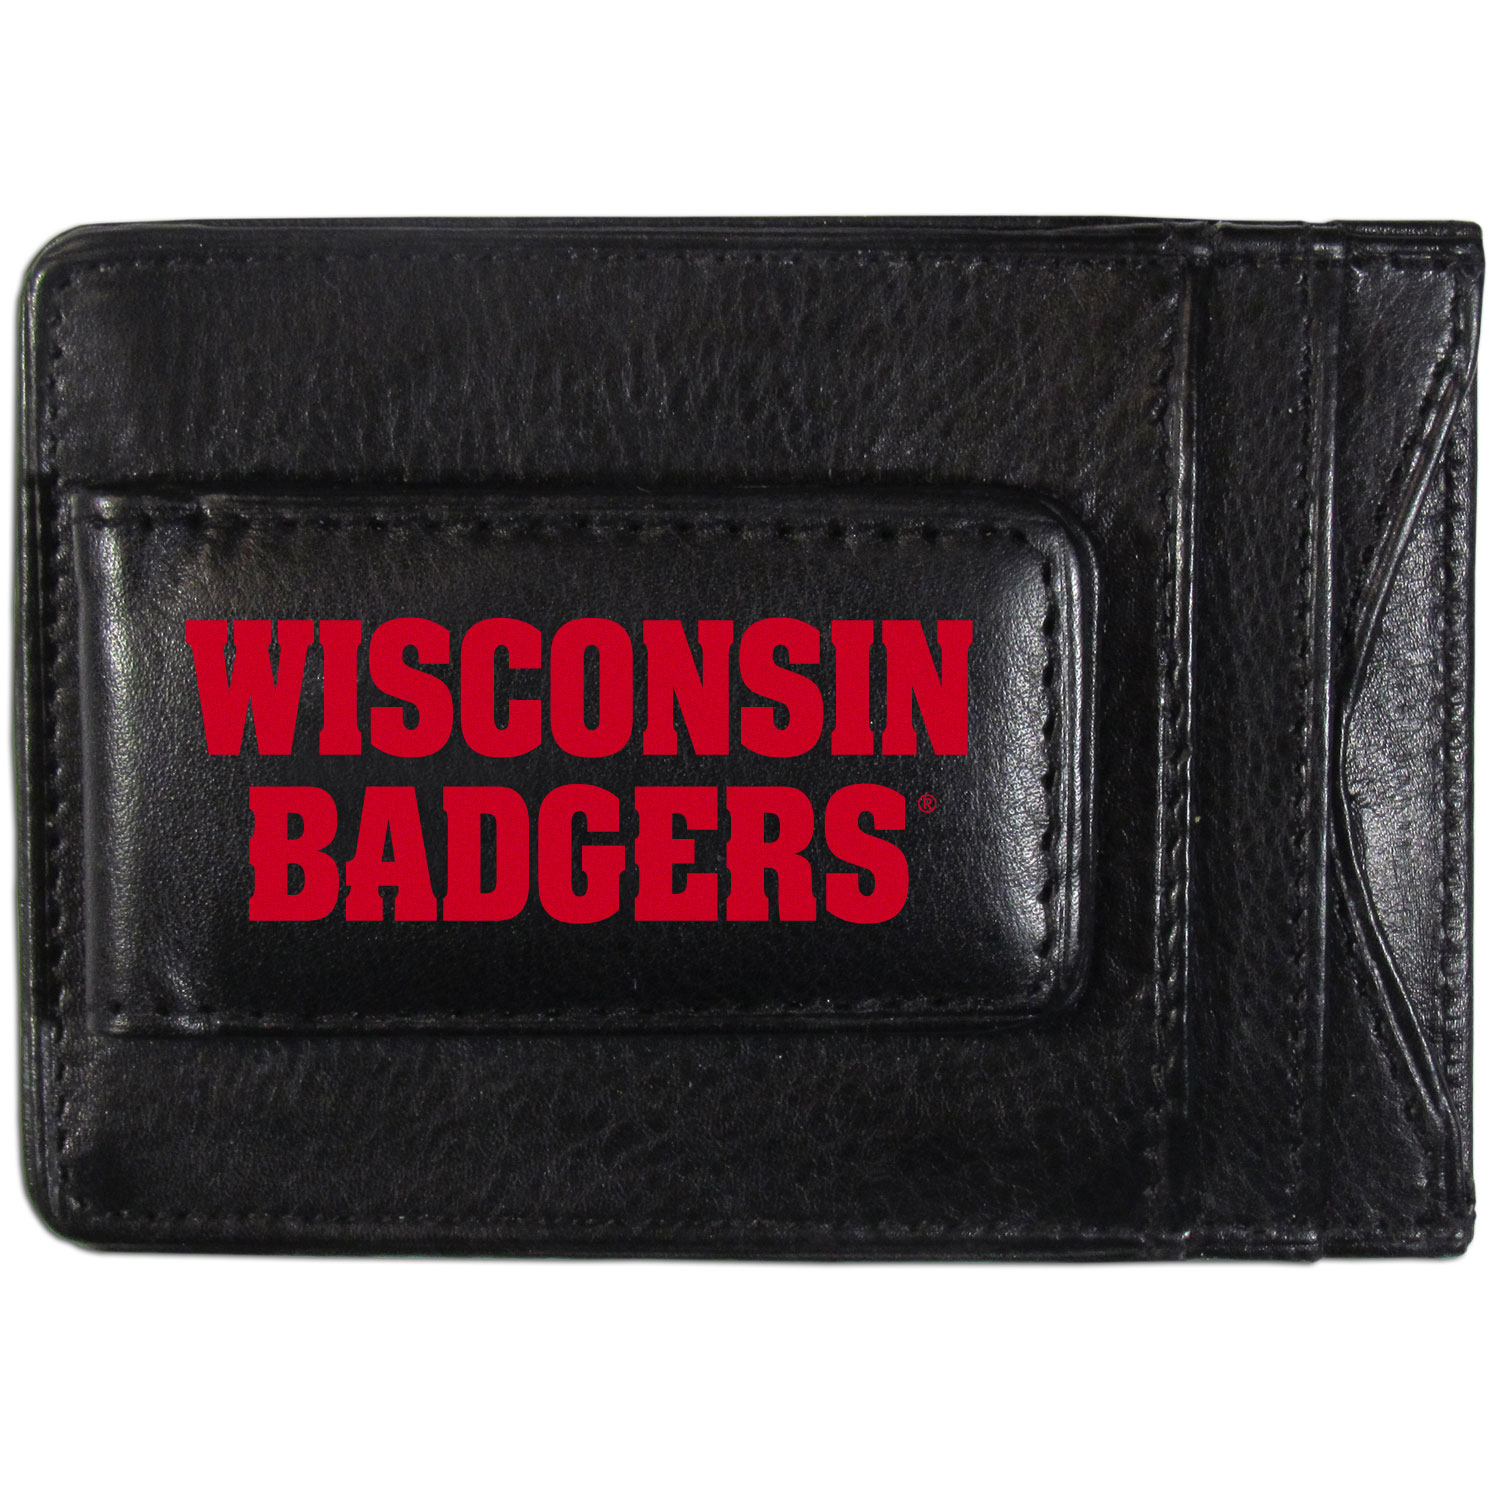 Wisconsin Badgers Logo Leather Cash and Cardholder - This super slim leather wallet lets you have all the benefits of a money clip while keeping the organization of a wallet. On one side of this front pocket wallet there is a strong, magnetic money clip to keep your cash easily accessible and the?Wisconsin Badgers team logo on the front. The versatile men's accessory is a perfect addition to your fan apparel.